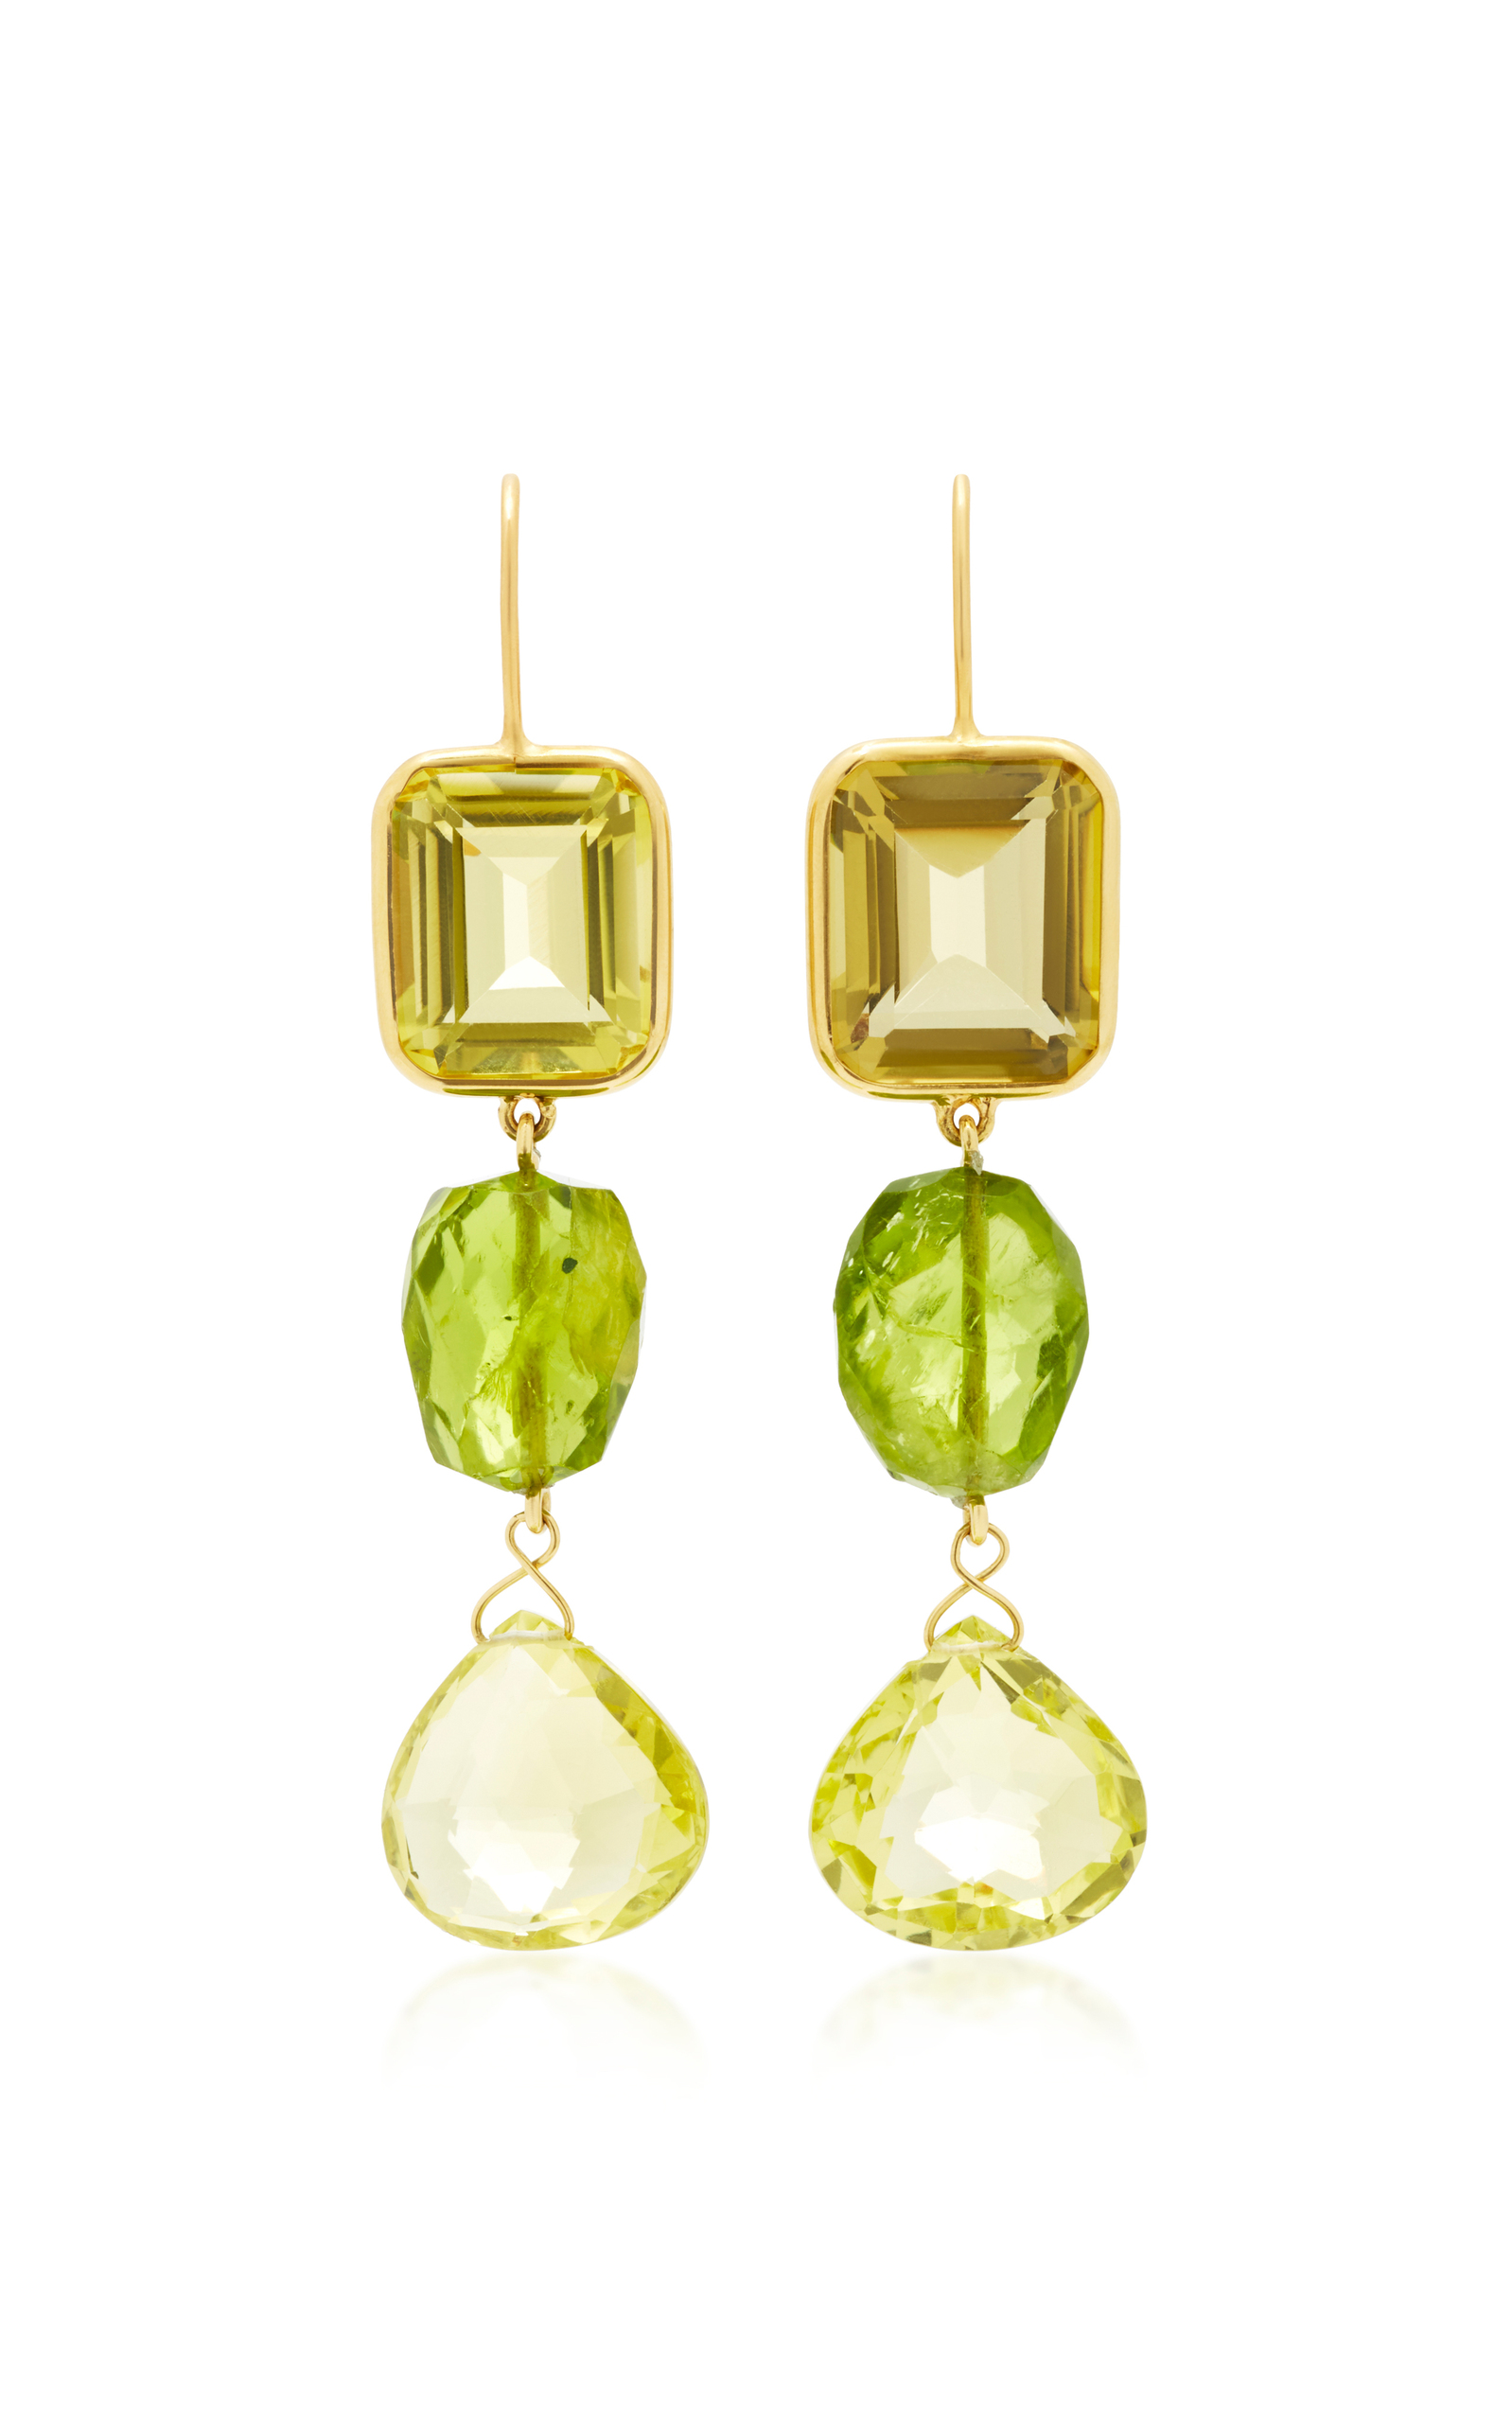 BRIGID BLANCO 18K Yellow Gold Citrine And Peridot Long Earrings in Green